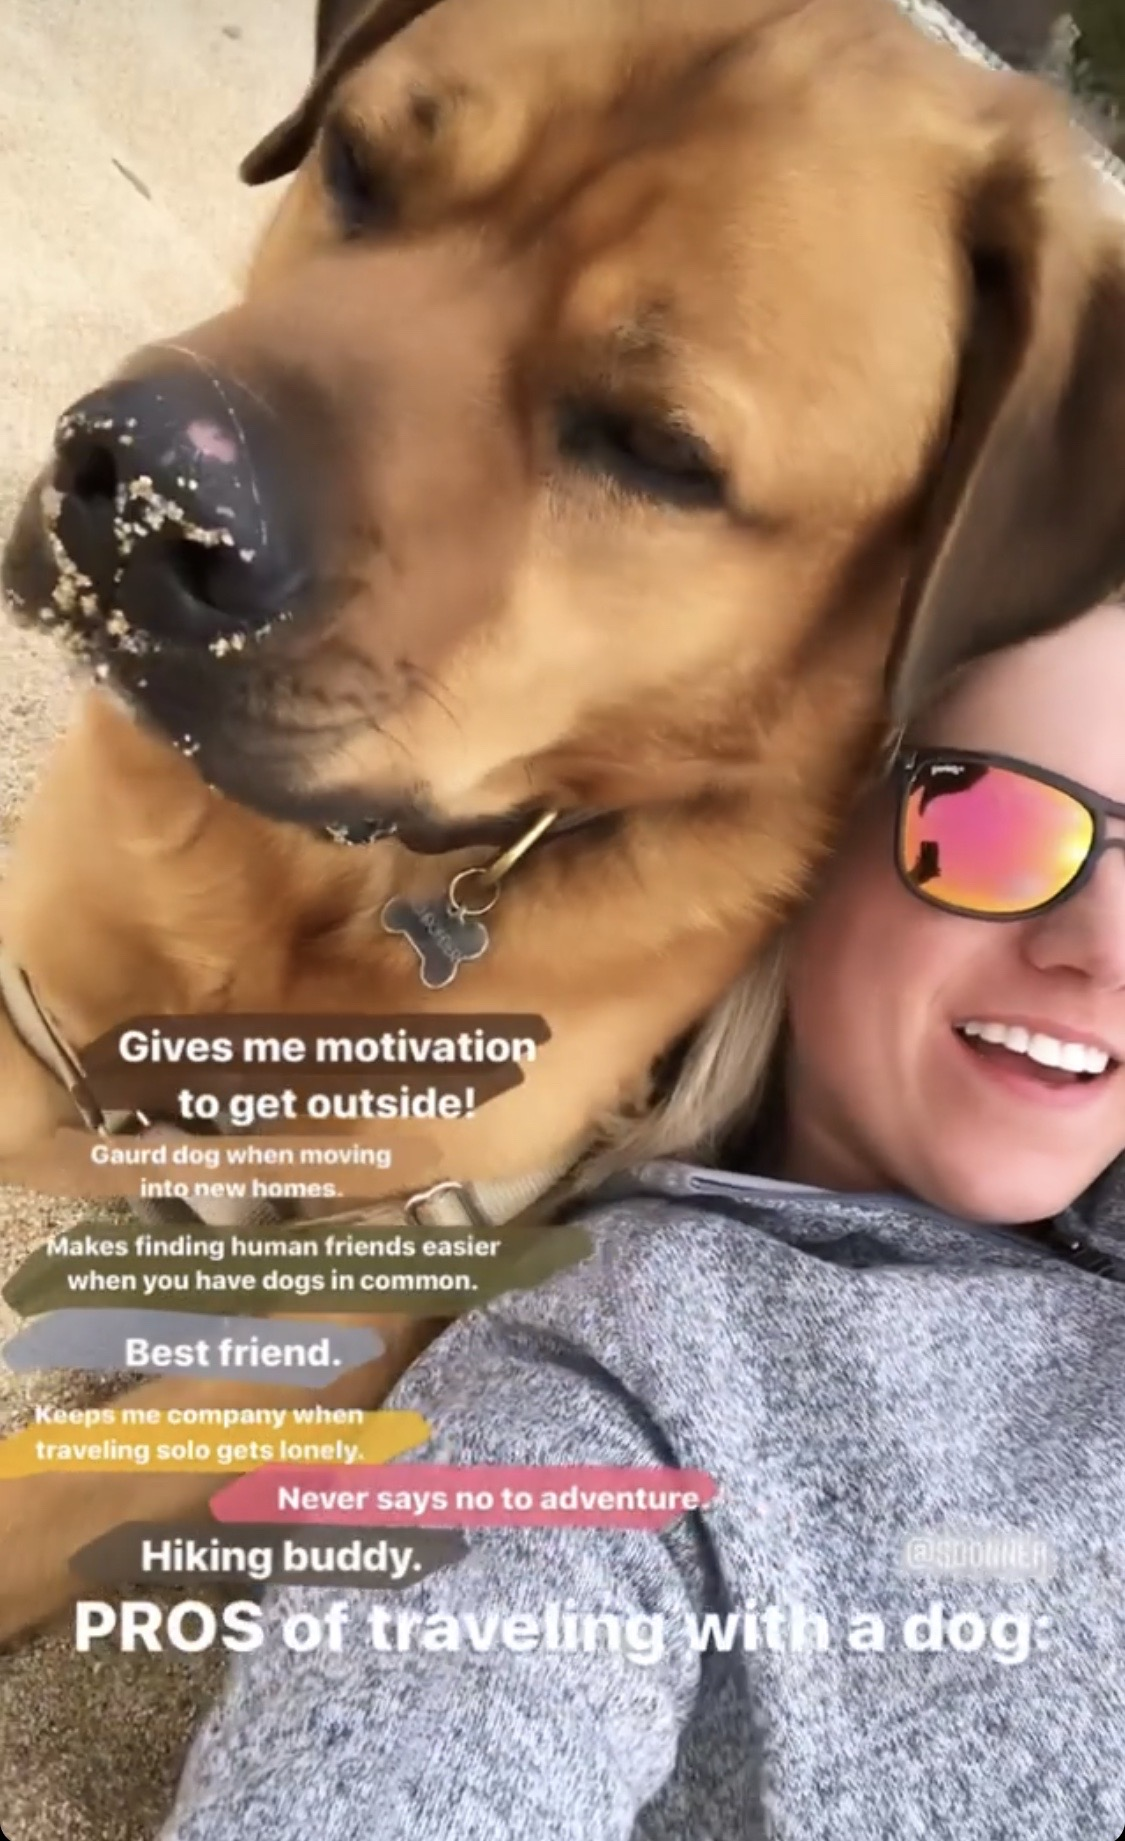 Travel Nurse She;lby and her dog taking a selfie on the beach